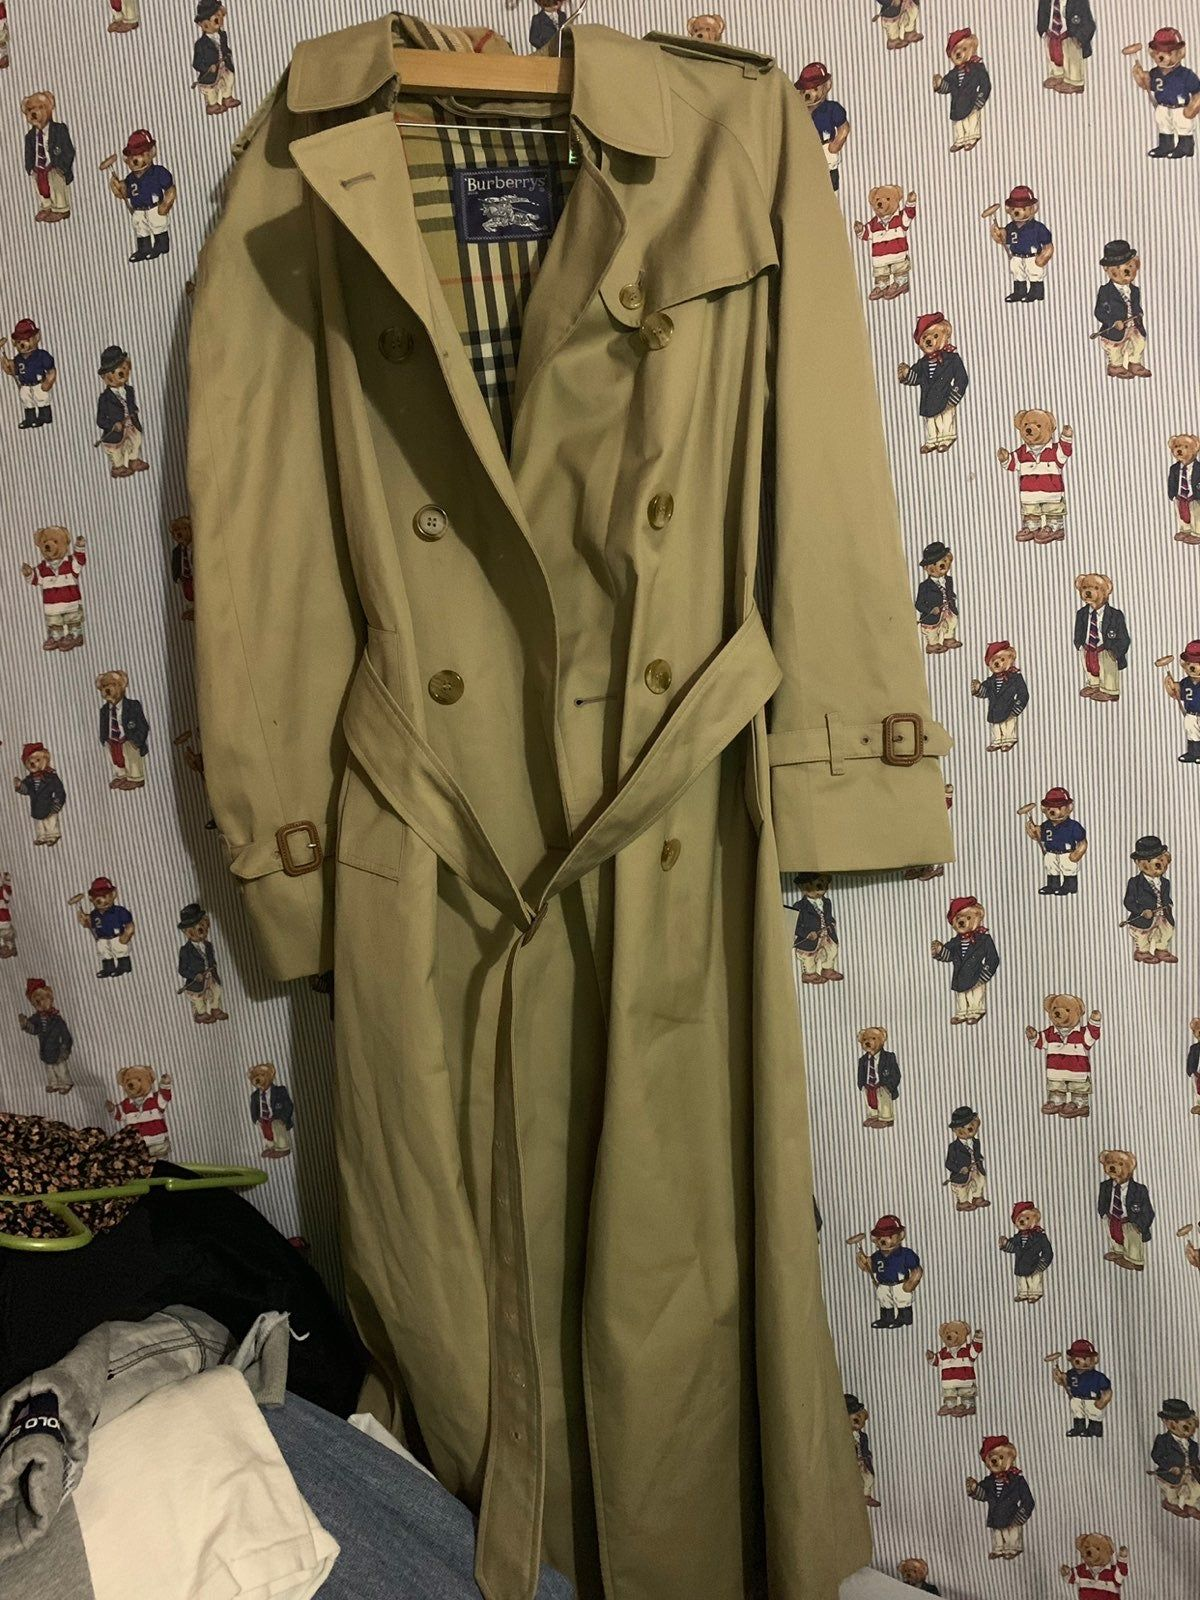 Super Clean Burberry S Coat Used It A Couple Of Times Dry Cleaners Lost The Inside Part Shows On The Pics No Tape Measurem Coat Burberry Burberry Trench